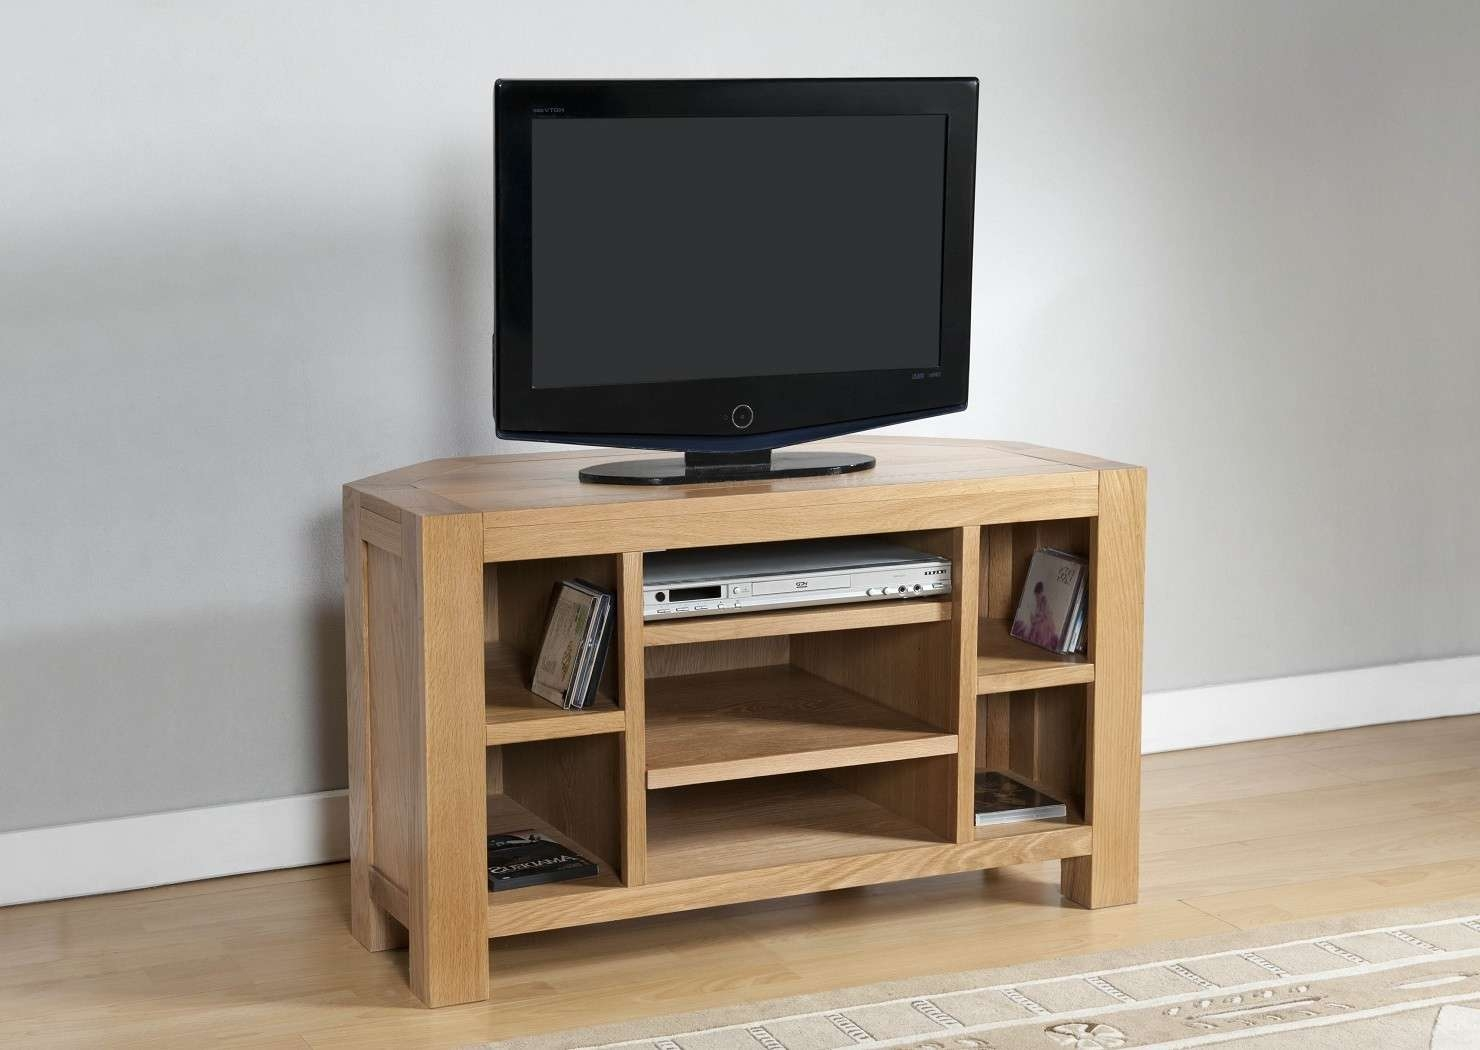 Aylesbury Contemporary Light Oak Corner Tv Unit | Oak Furniture Uk With Light Oak Tv Cabinets (View 11 of 20)